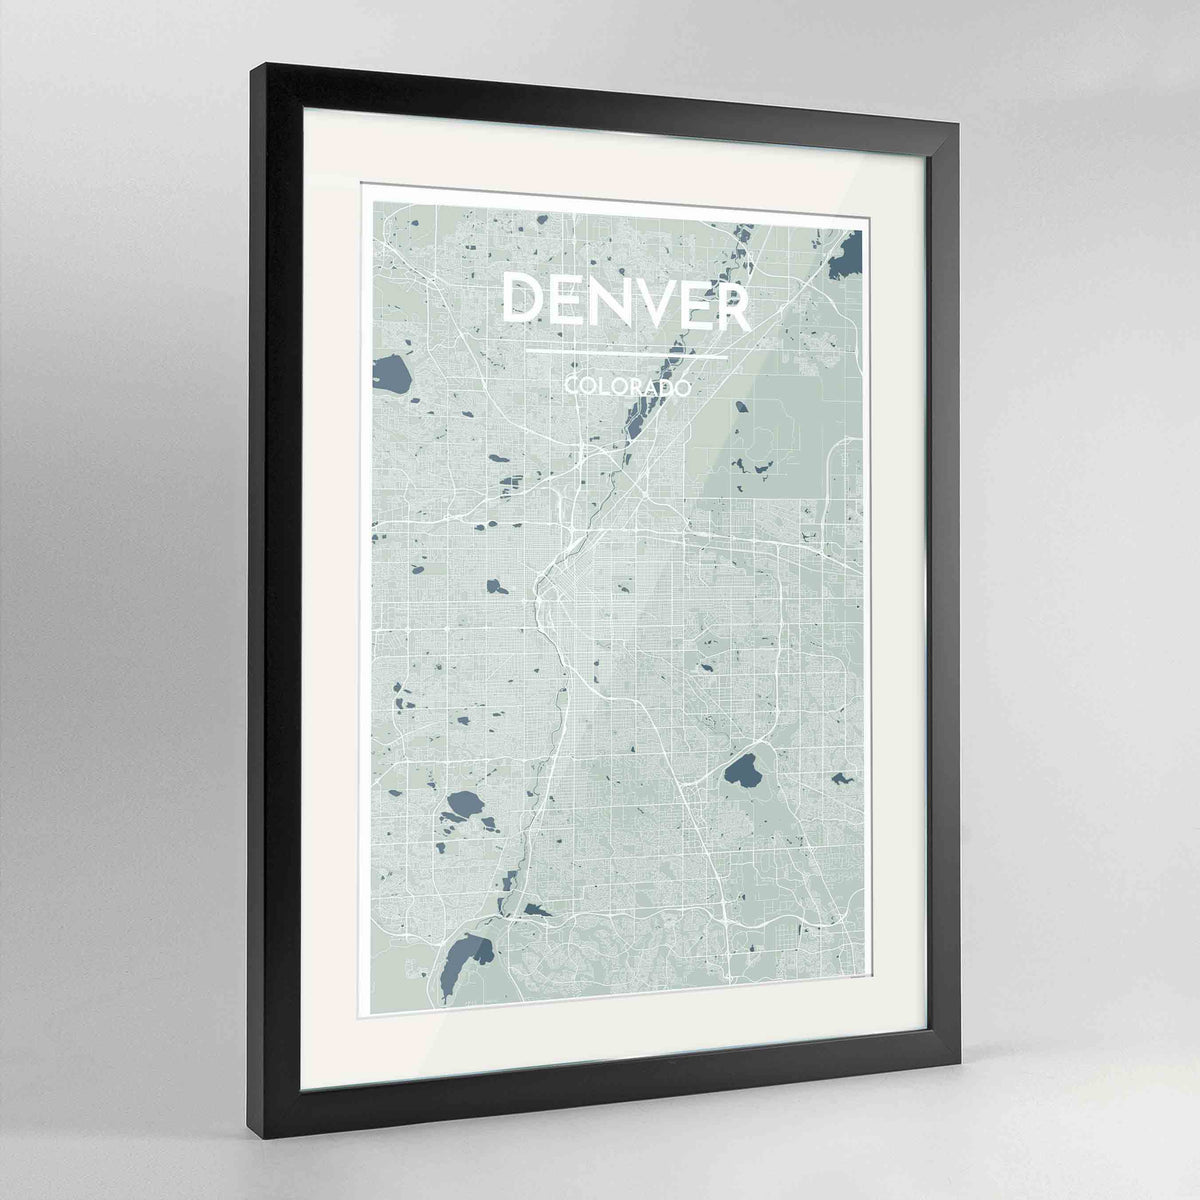 "Framed Denver Map Art Print 24x36"" Contemporary Black frame Point Two Design Group"